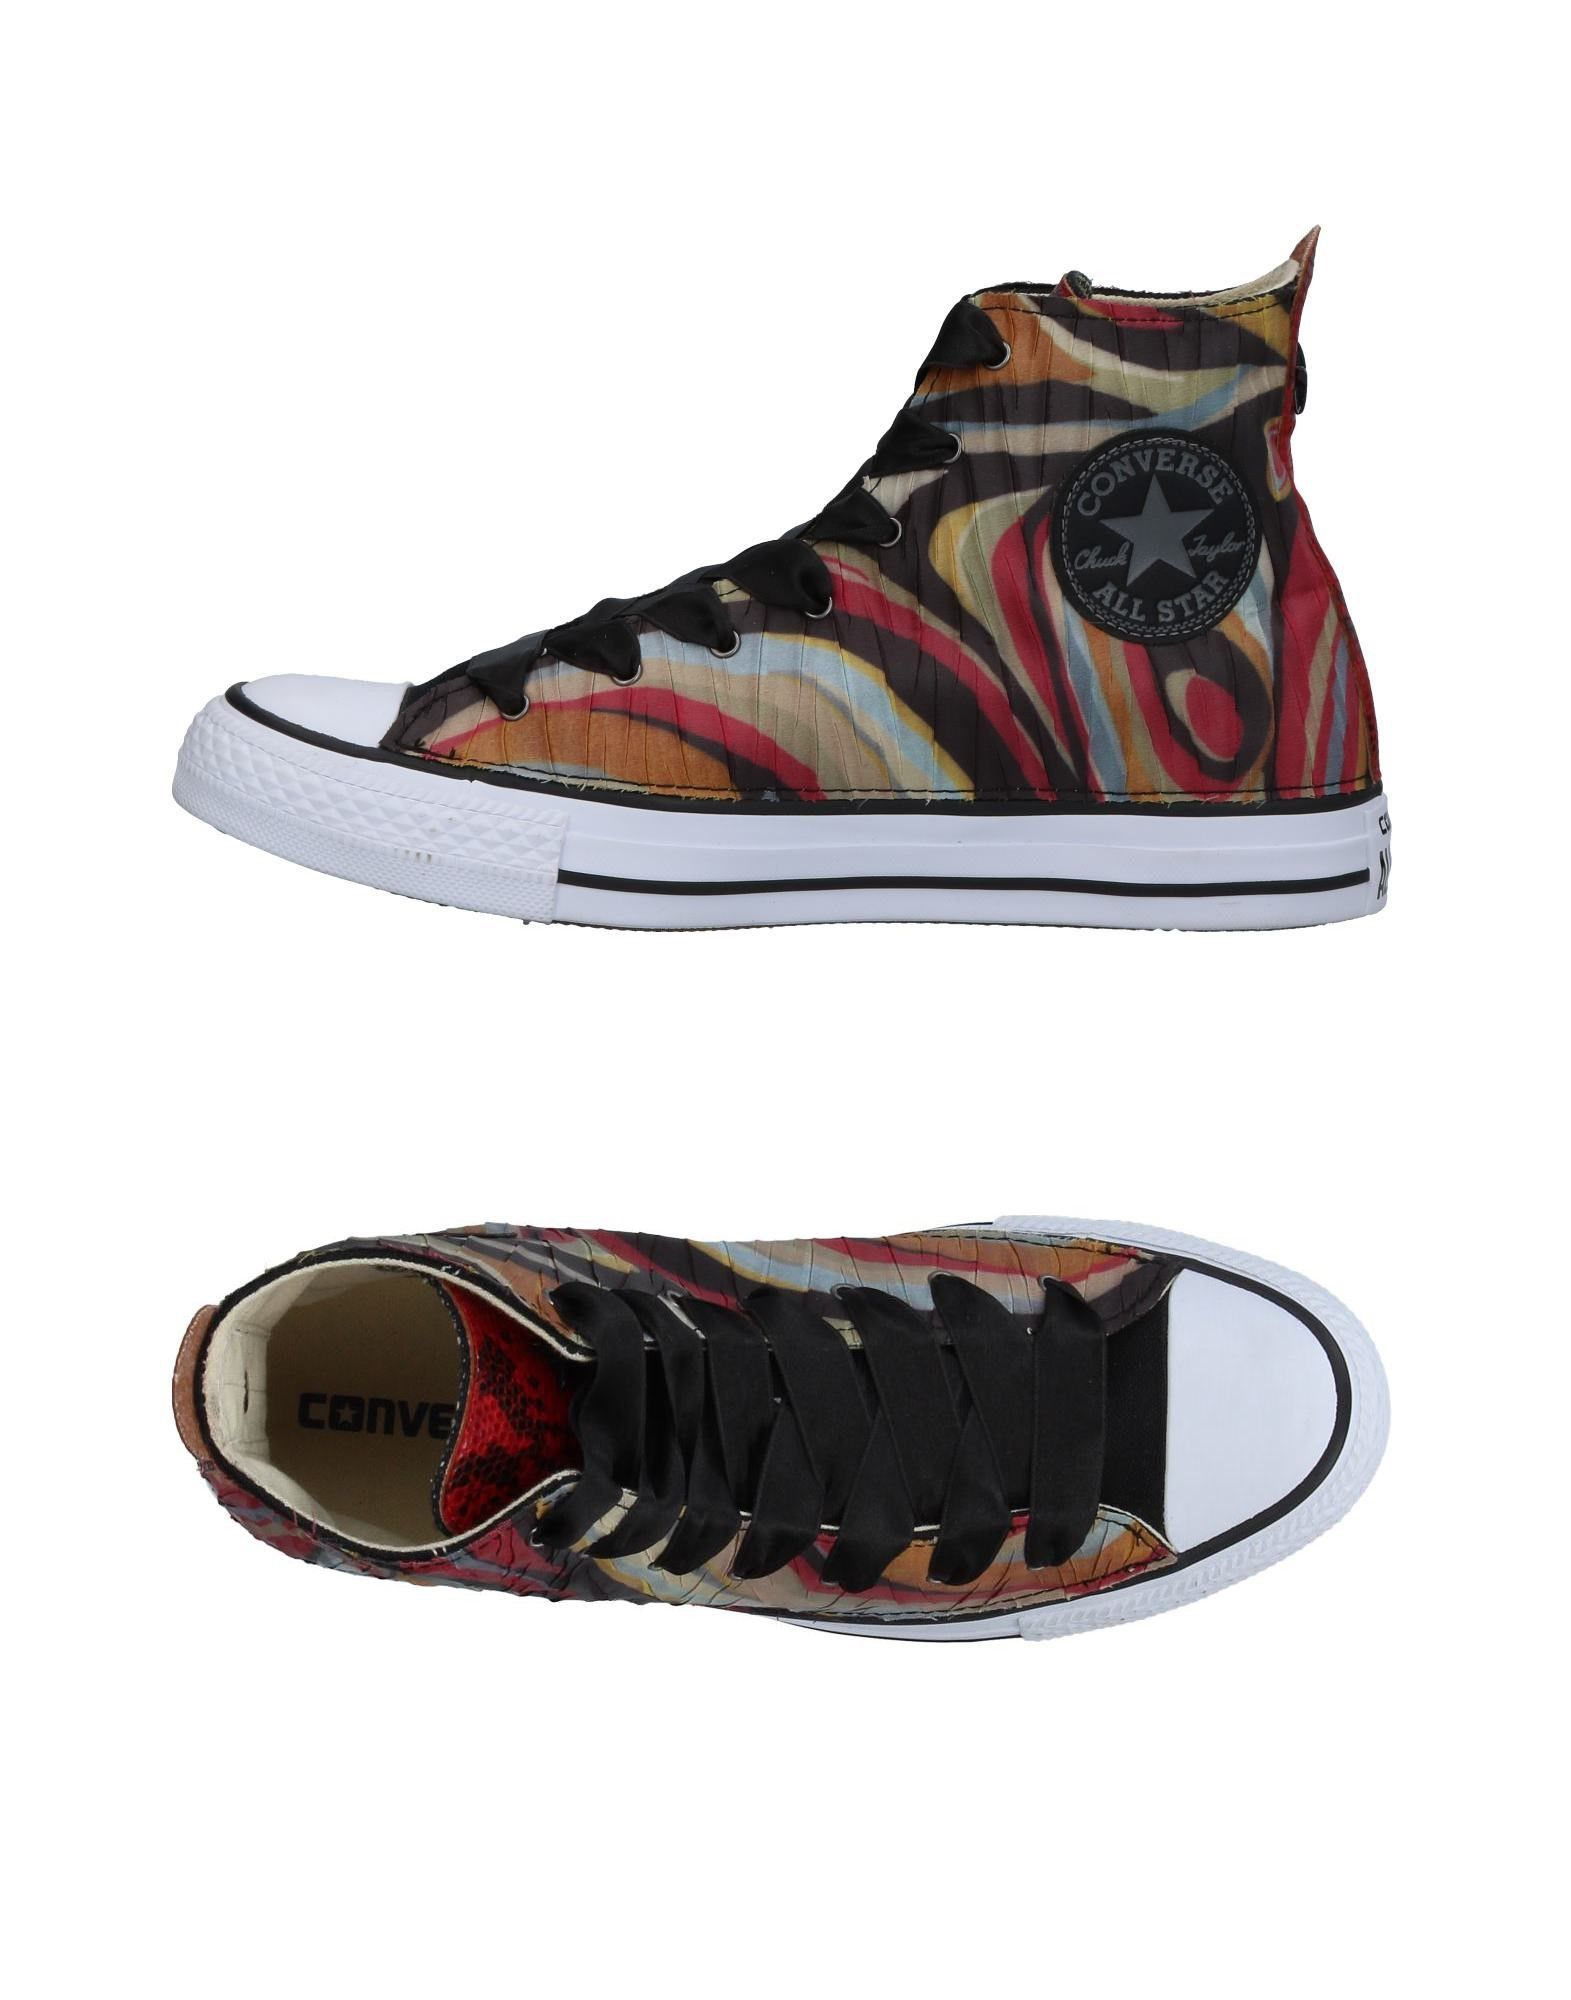 Sneakers Converse Limited Edition Femme - Sneakers Converse Limited Edition sur